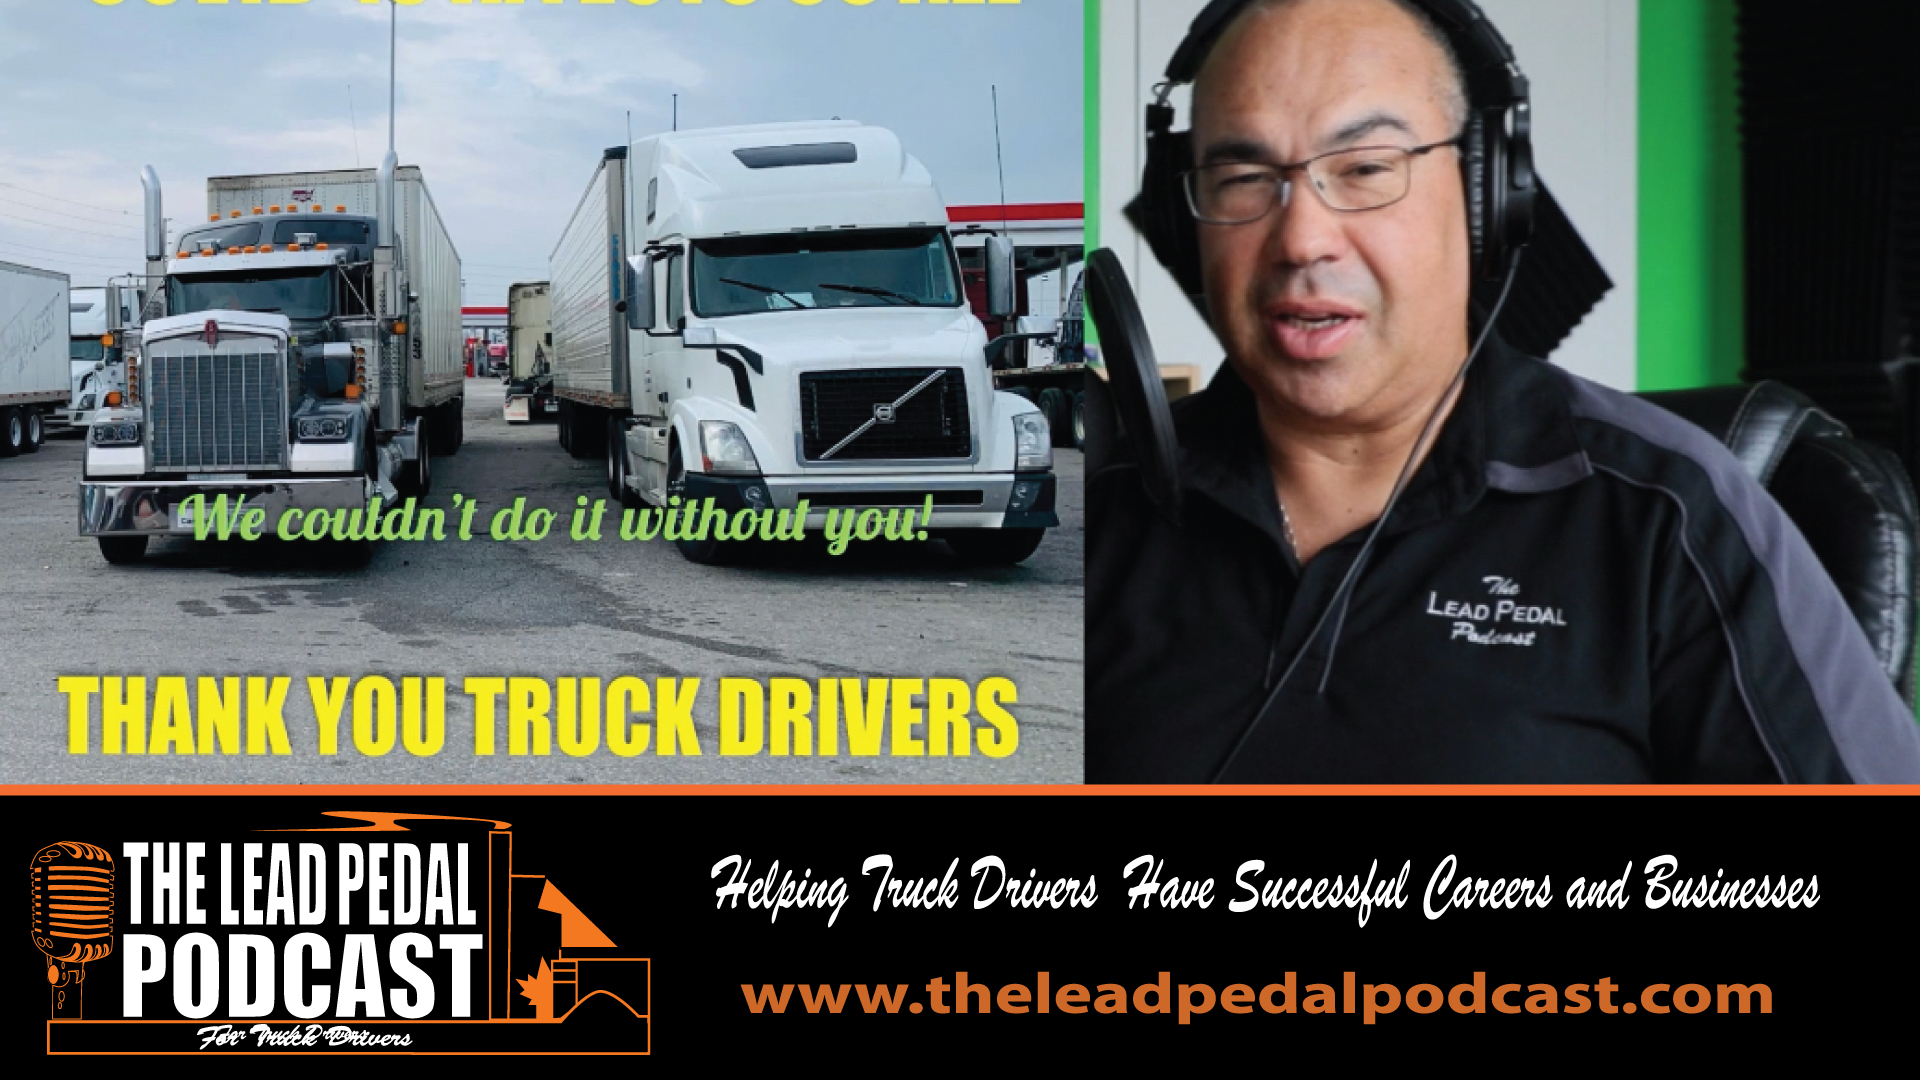 truckers Step up during pandemic